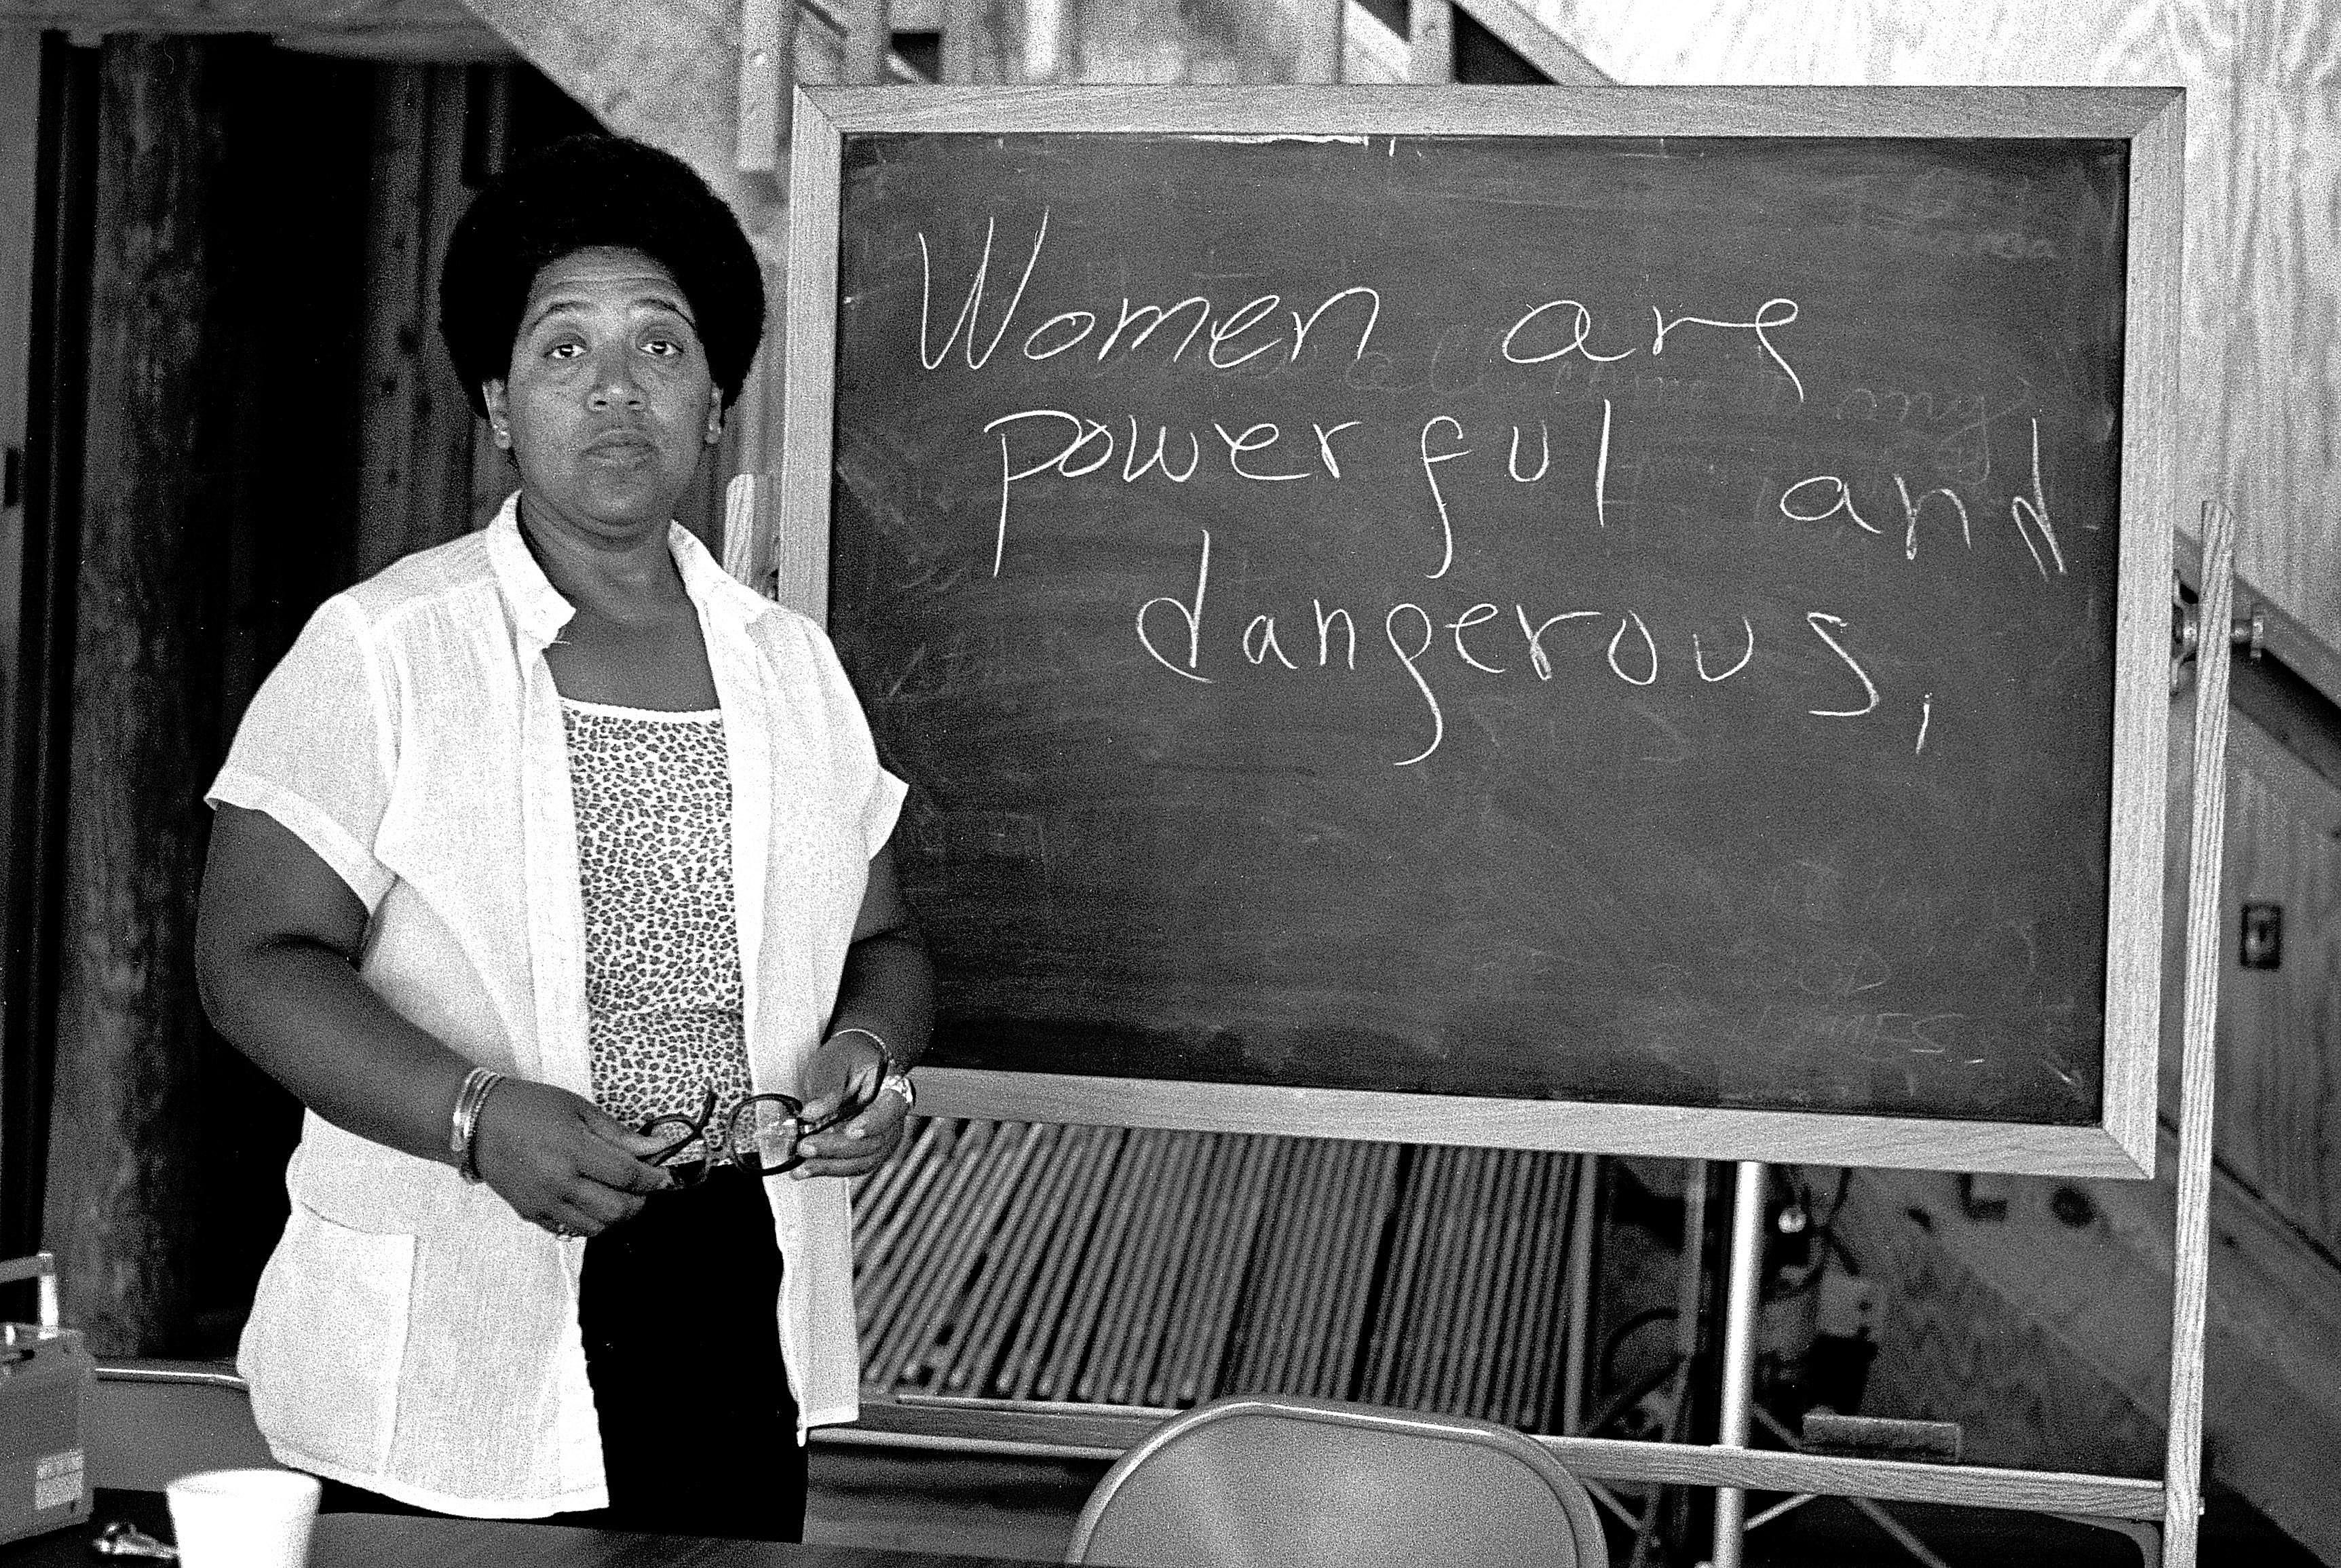 Audre Lorde was a Black lesbian feminist scholar and writer who made important contributions to sociology.